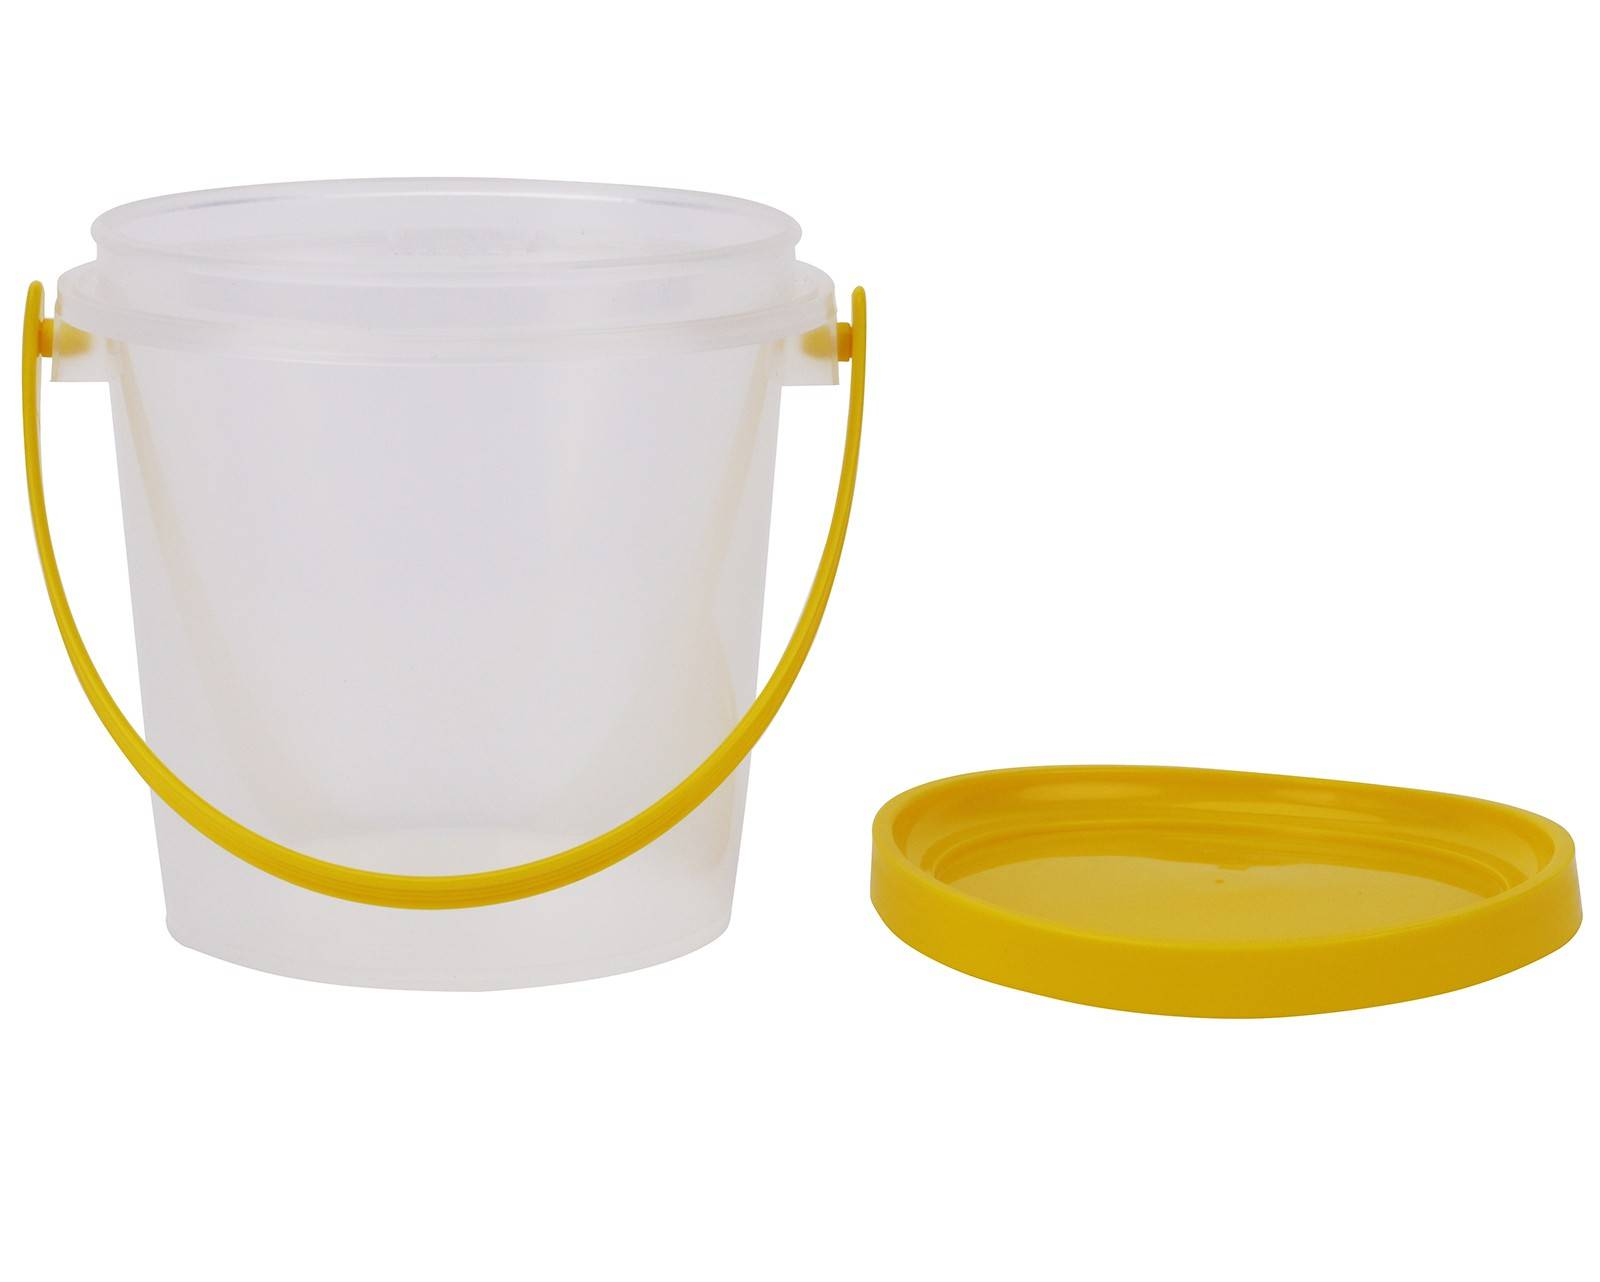 Plastic Honey Bucket 800ml/1kg - Carton 180pcs, Jar and Lid with Handle